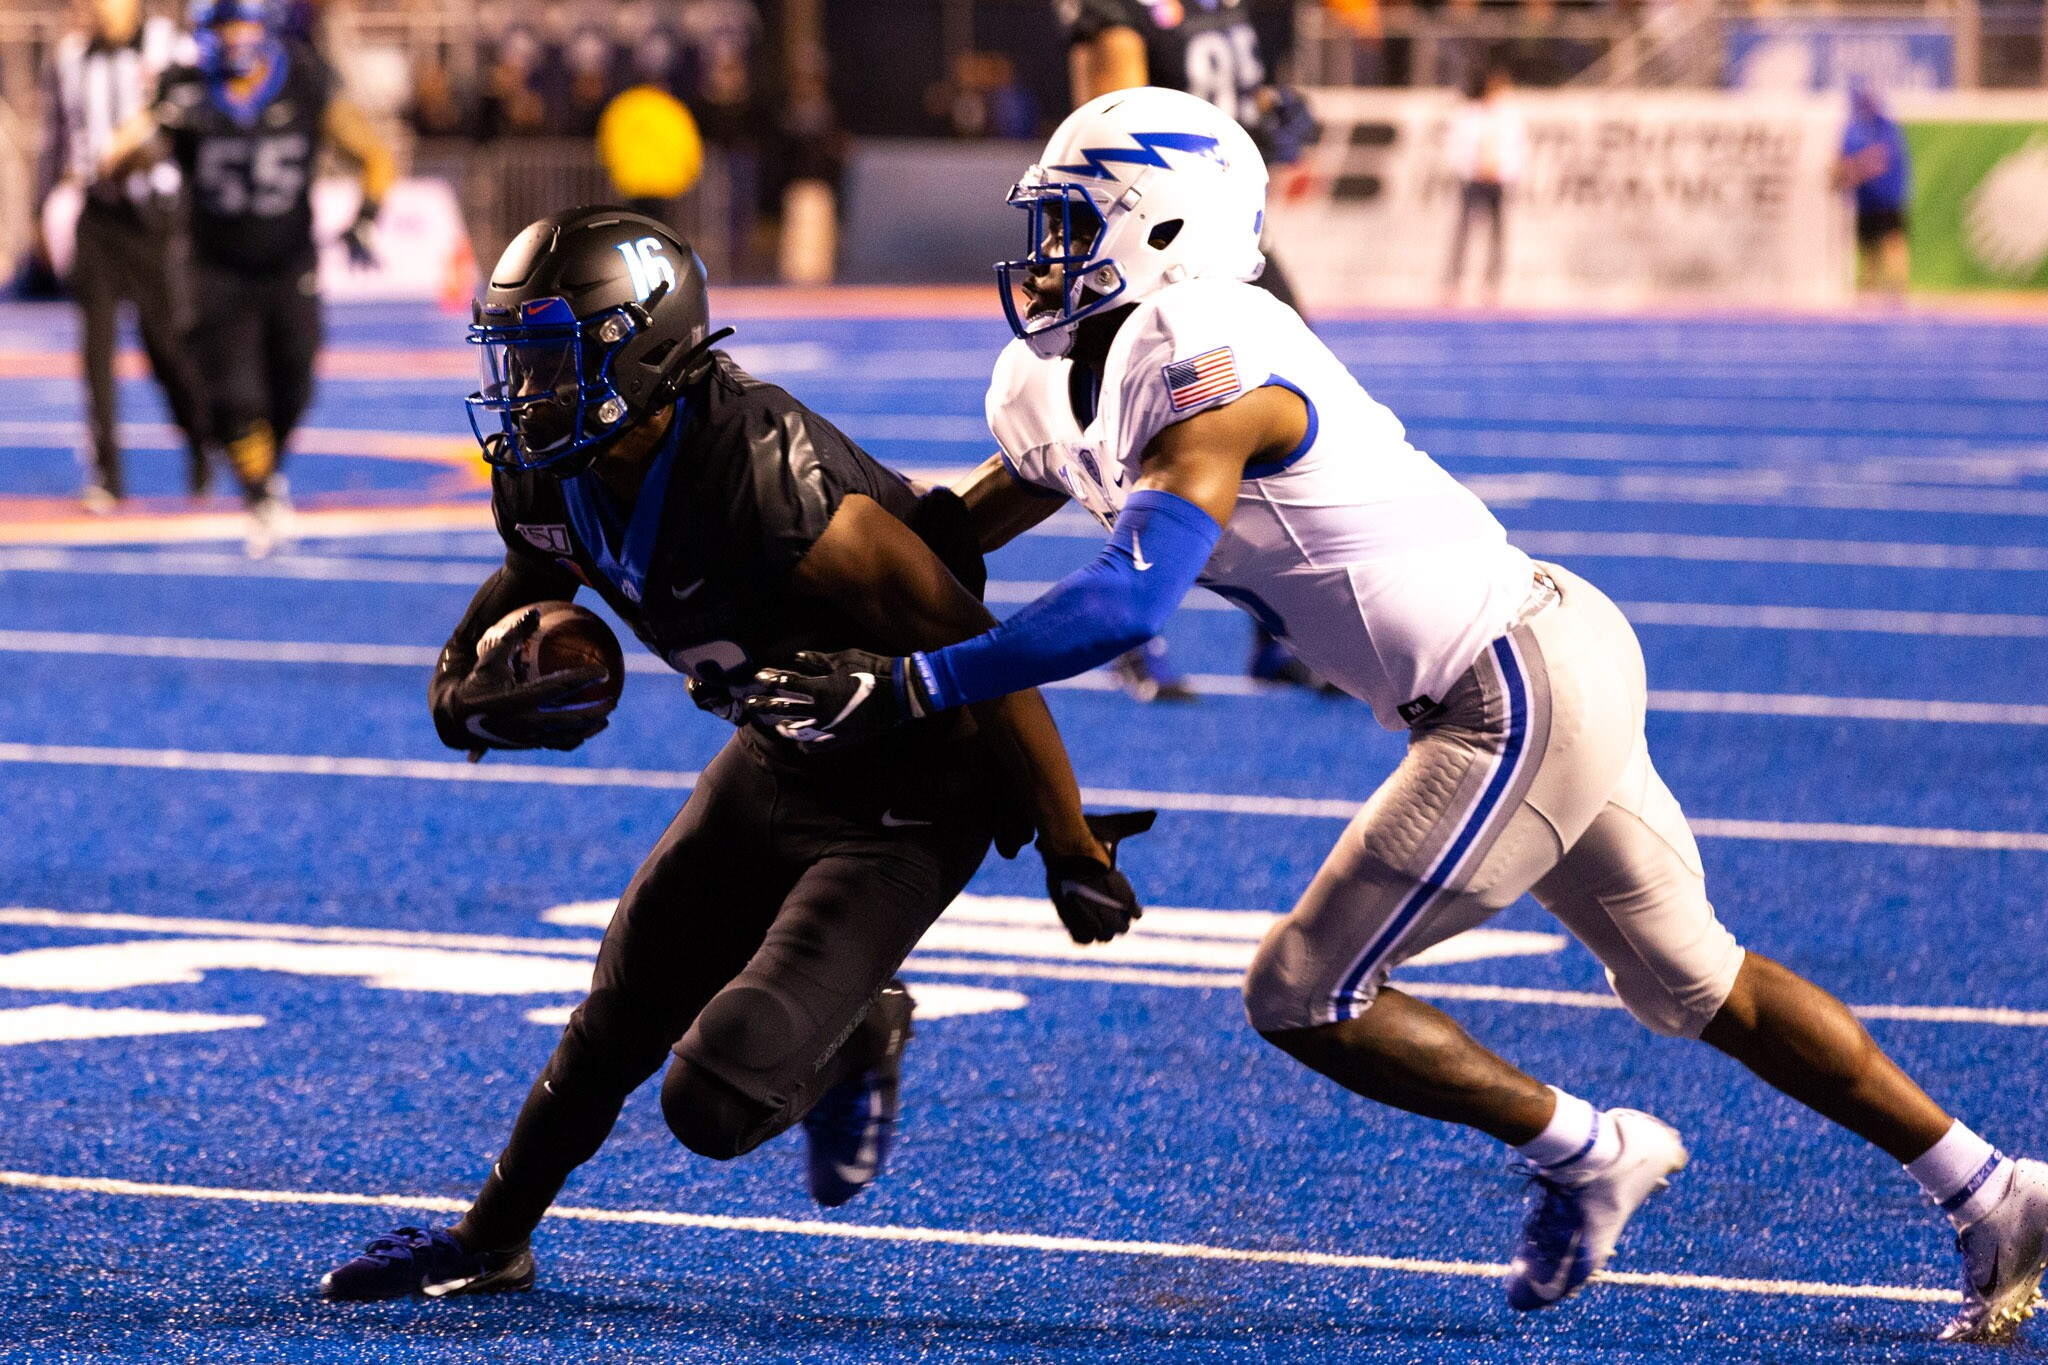 bsu_vs_airforce_2019-41.jpg